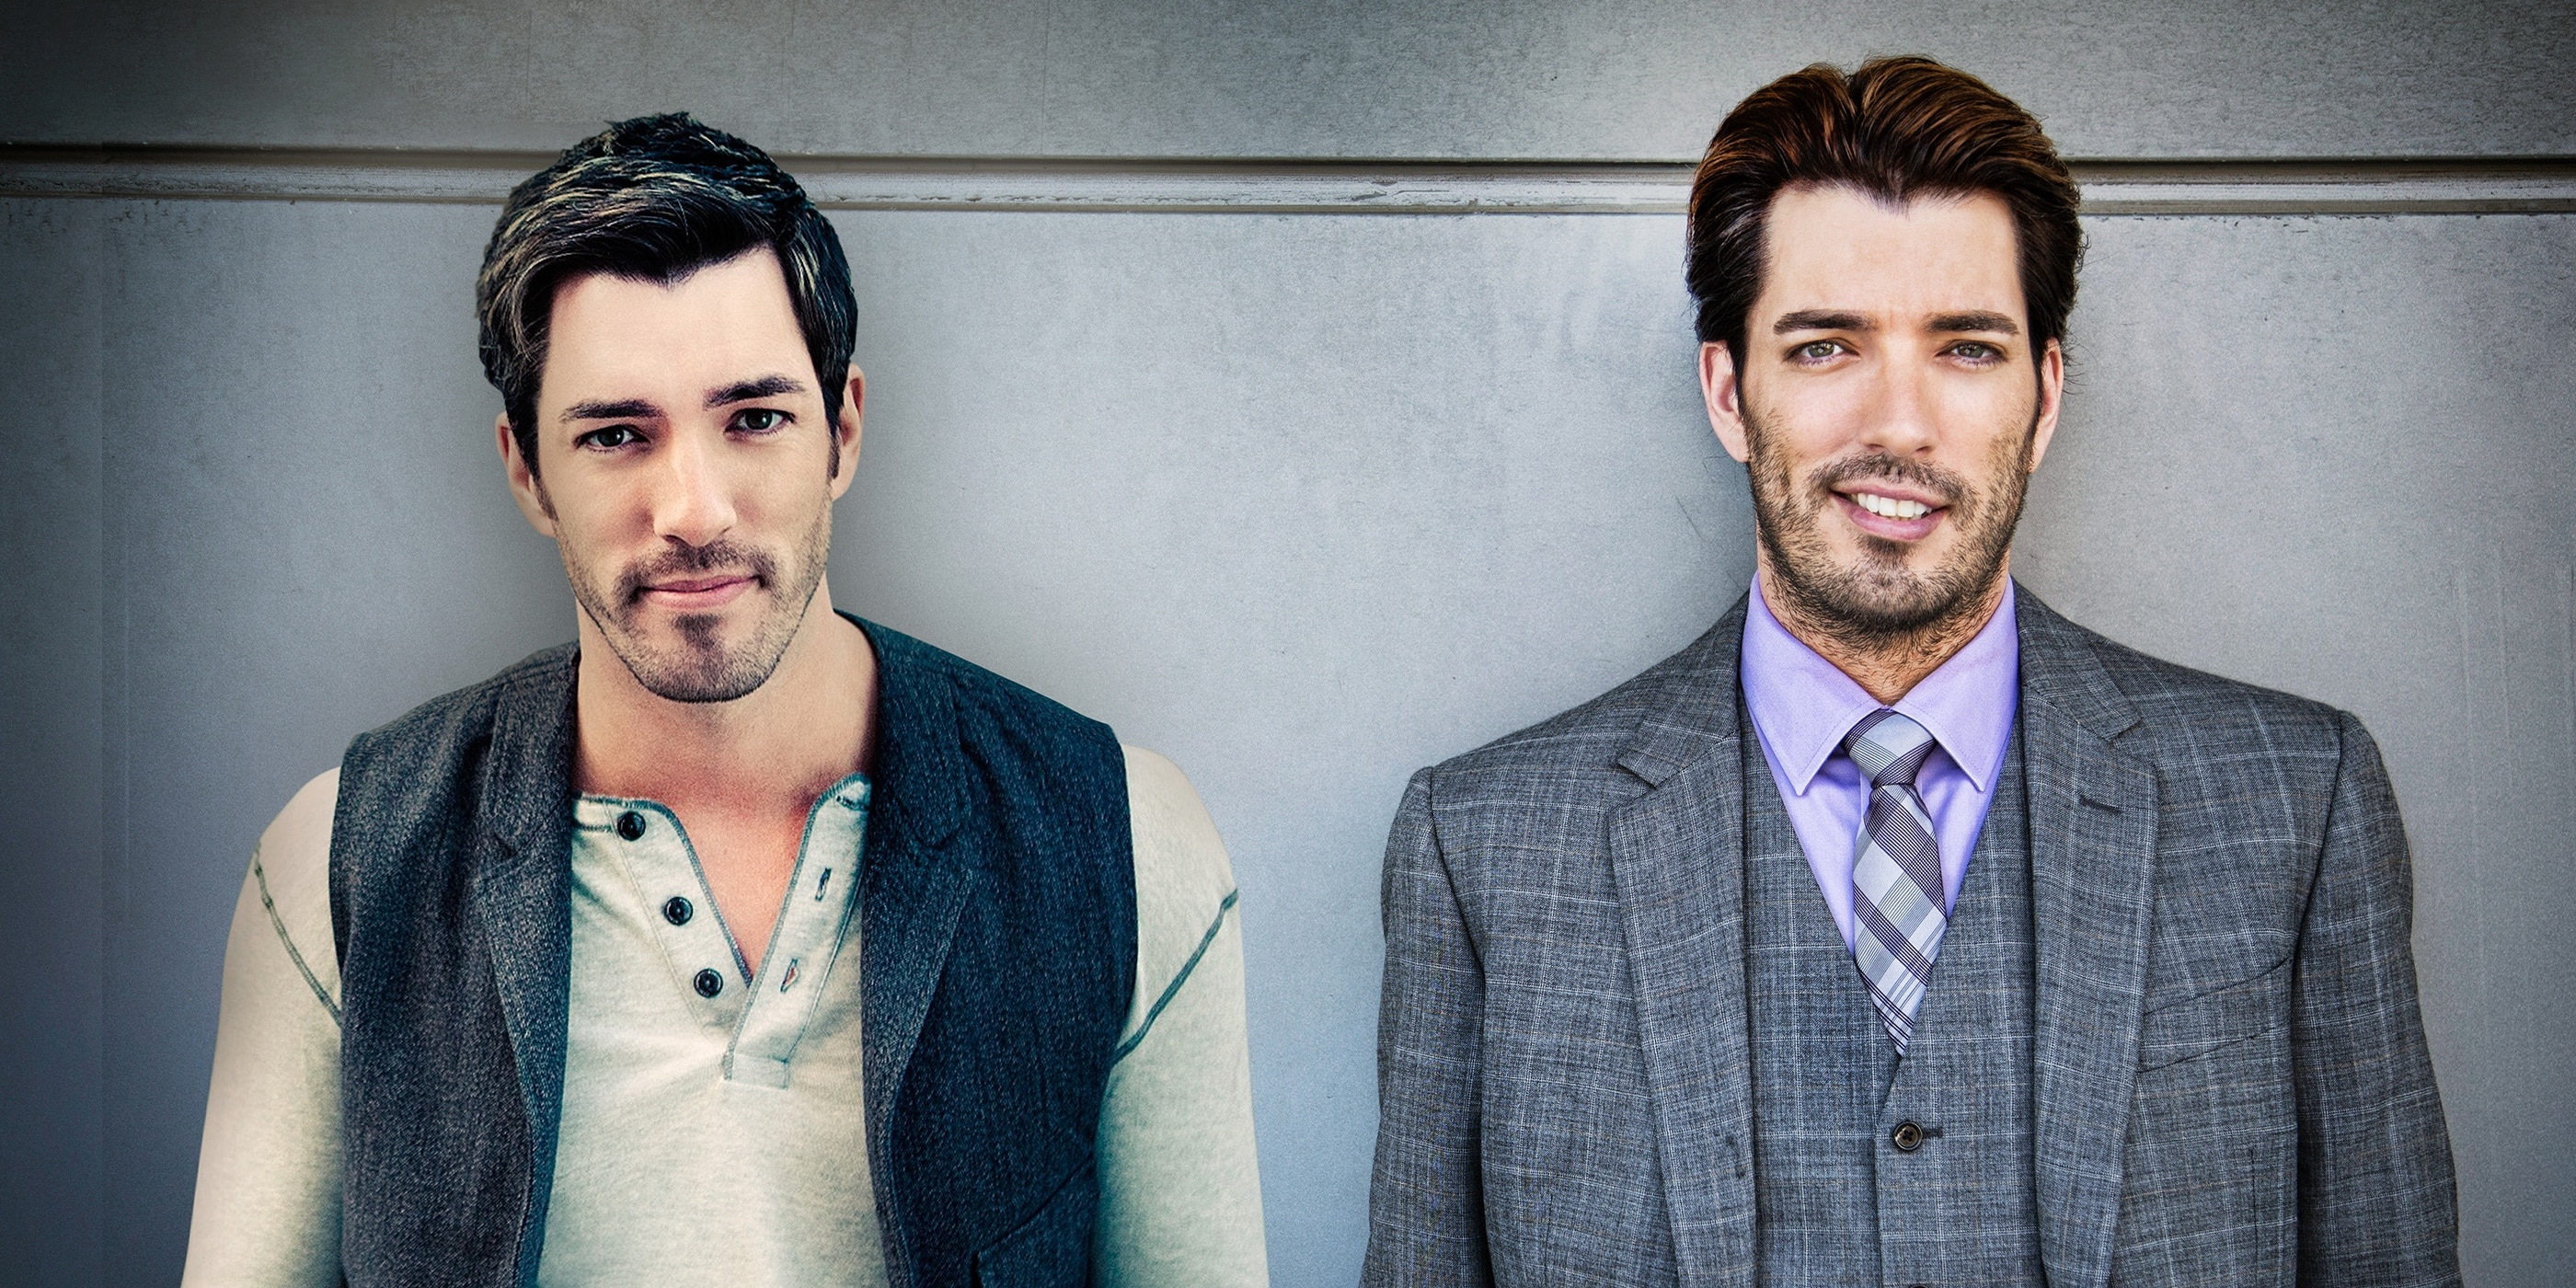 Is Jonathan Scott Married? His Bio, Age, First Wife, Child